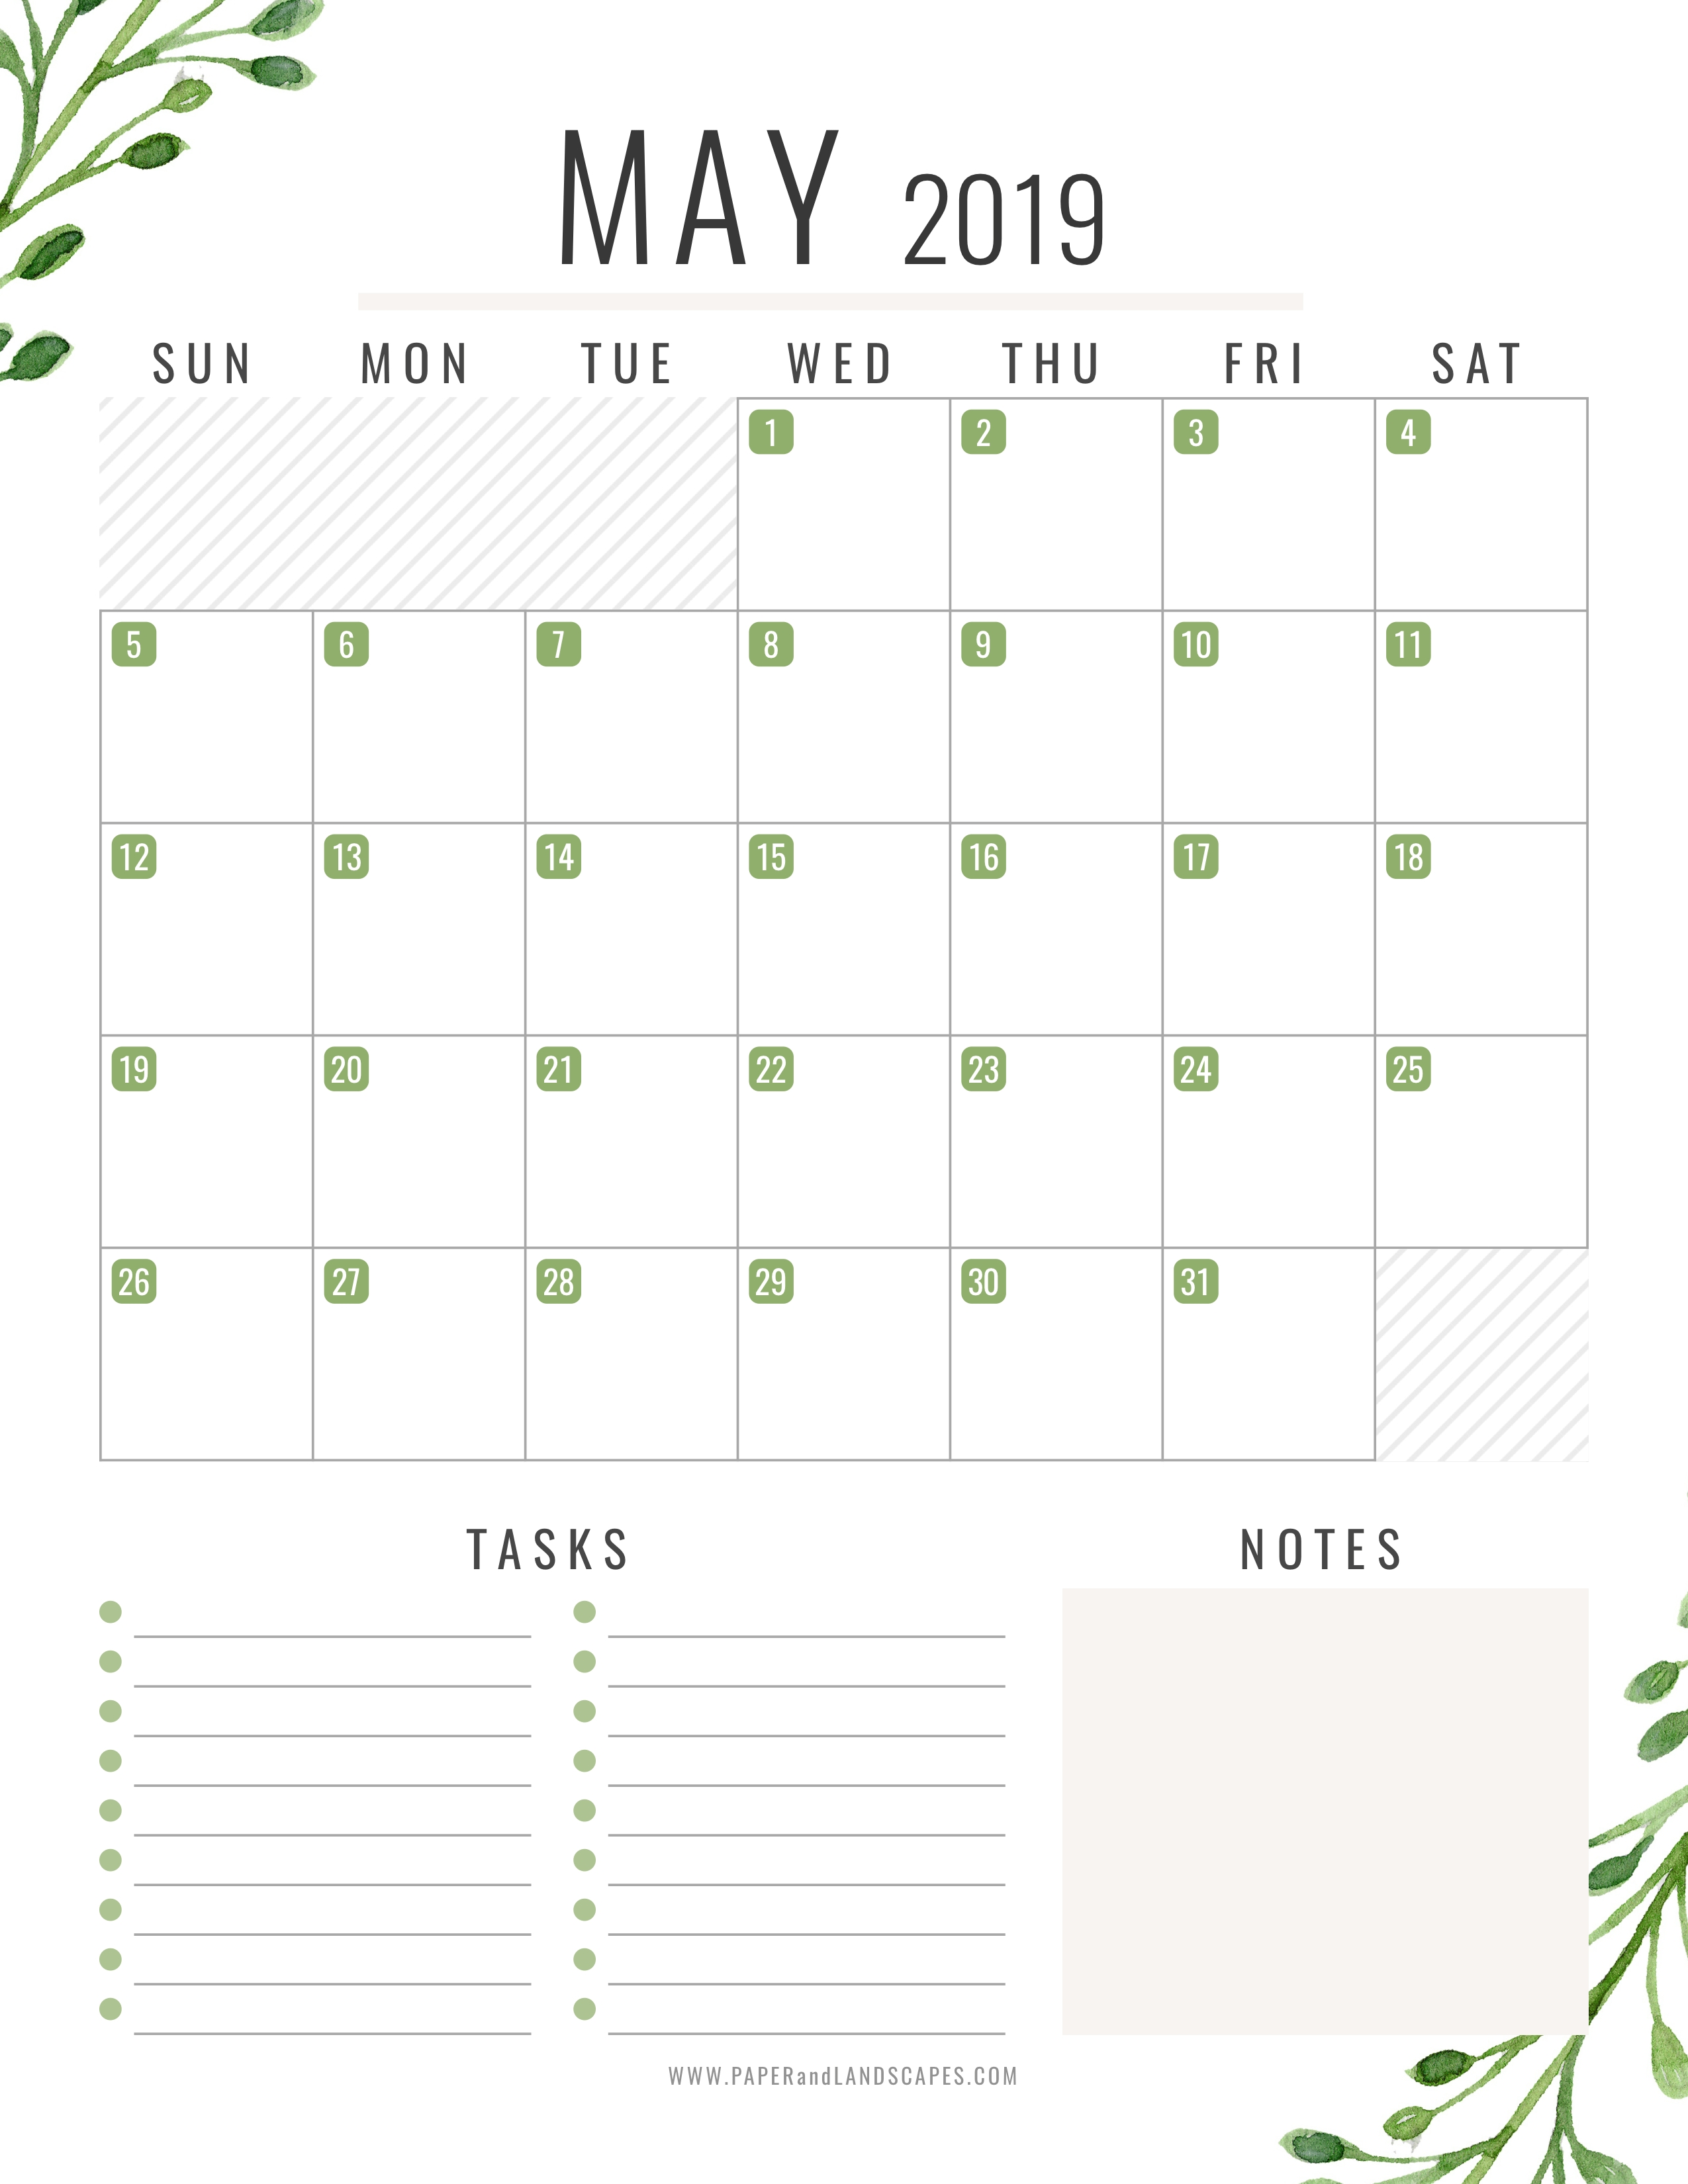 05 May 2019 - Free Printable Calendar - Paper And Landscapes